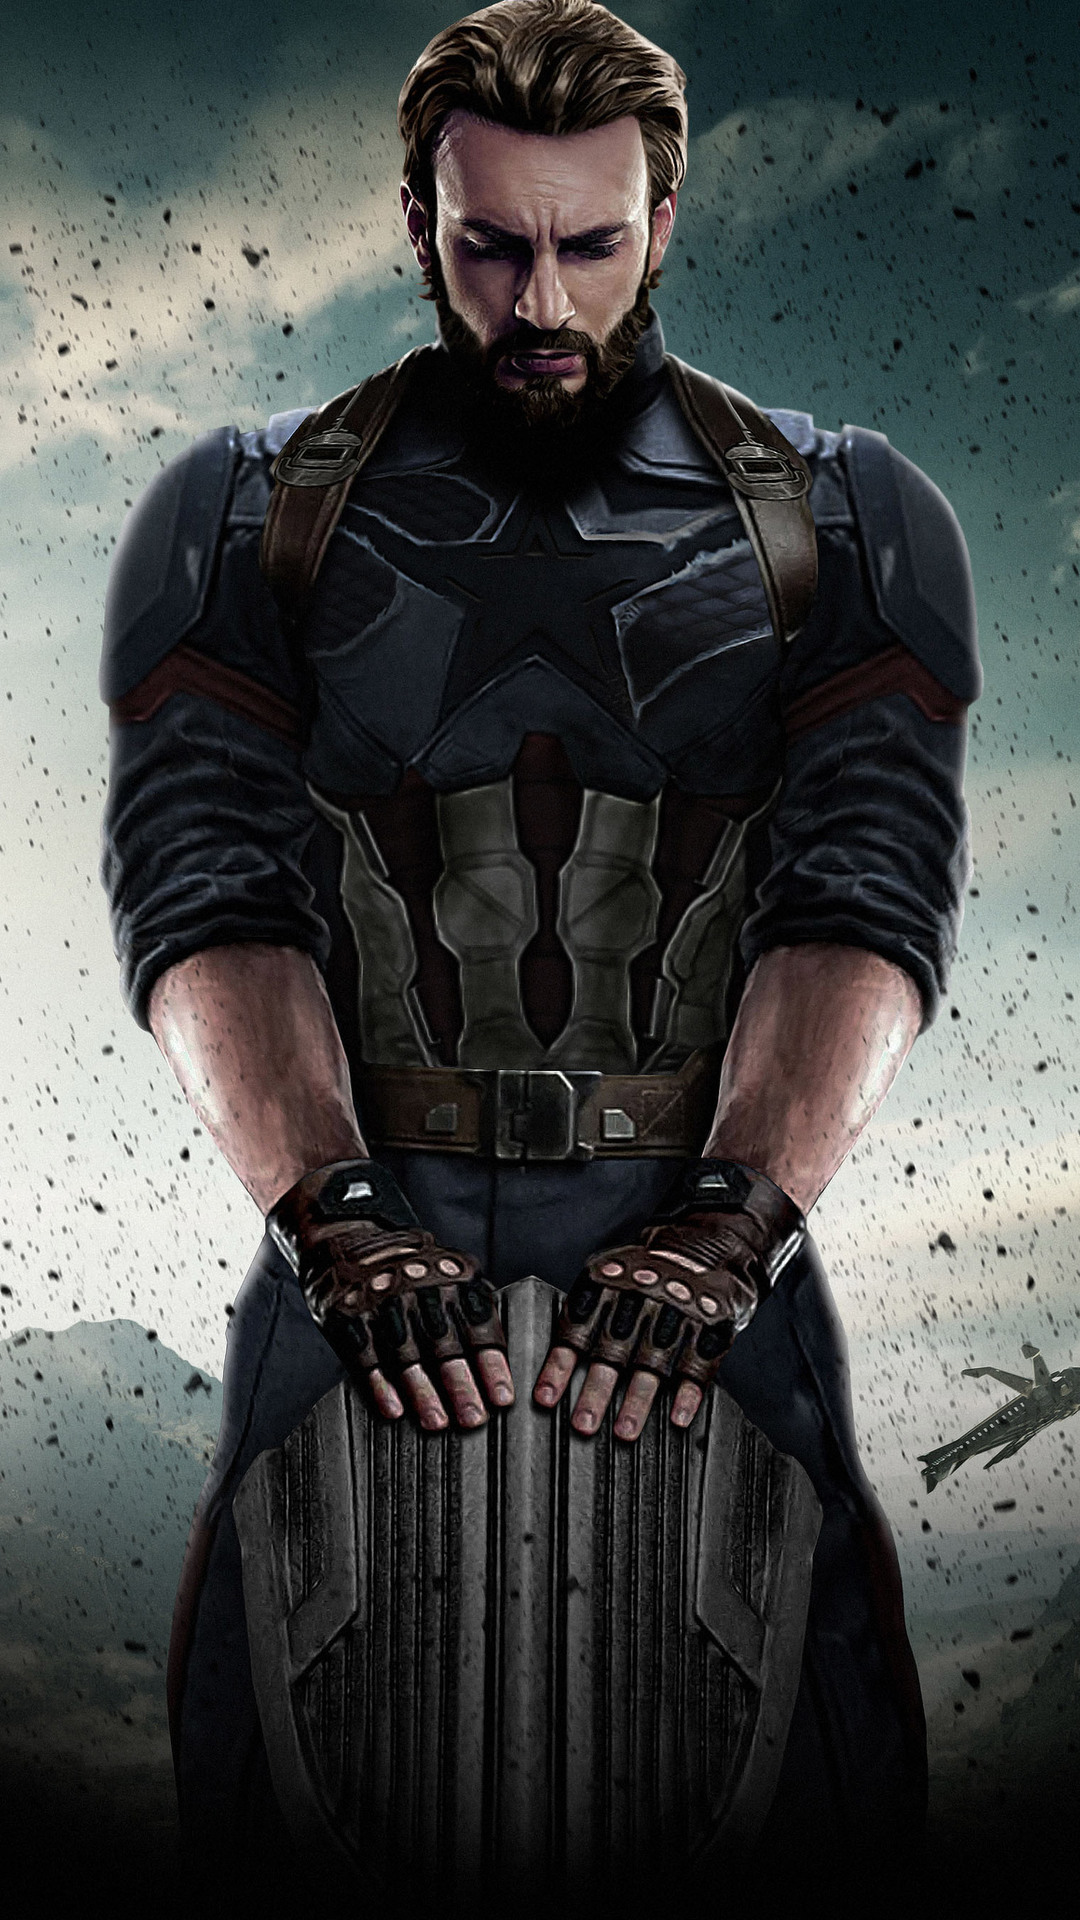 Captain America Infinity War - Best htc one wallpapers ...